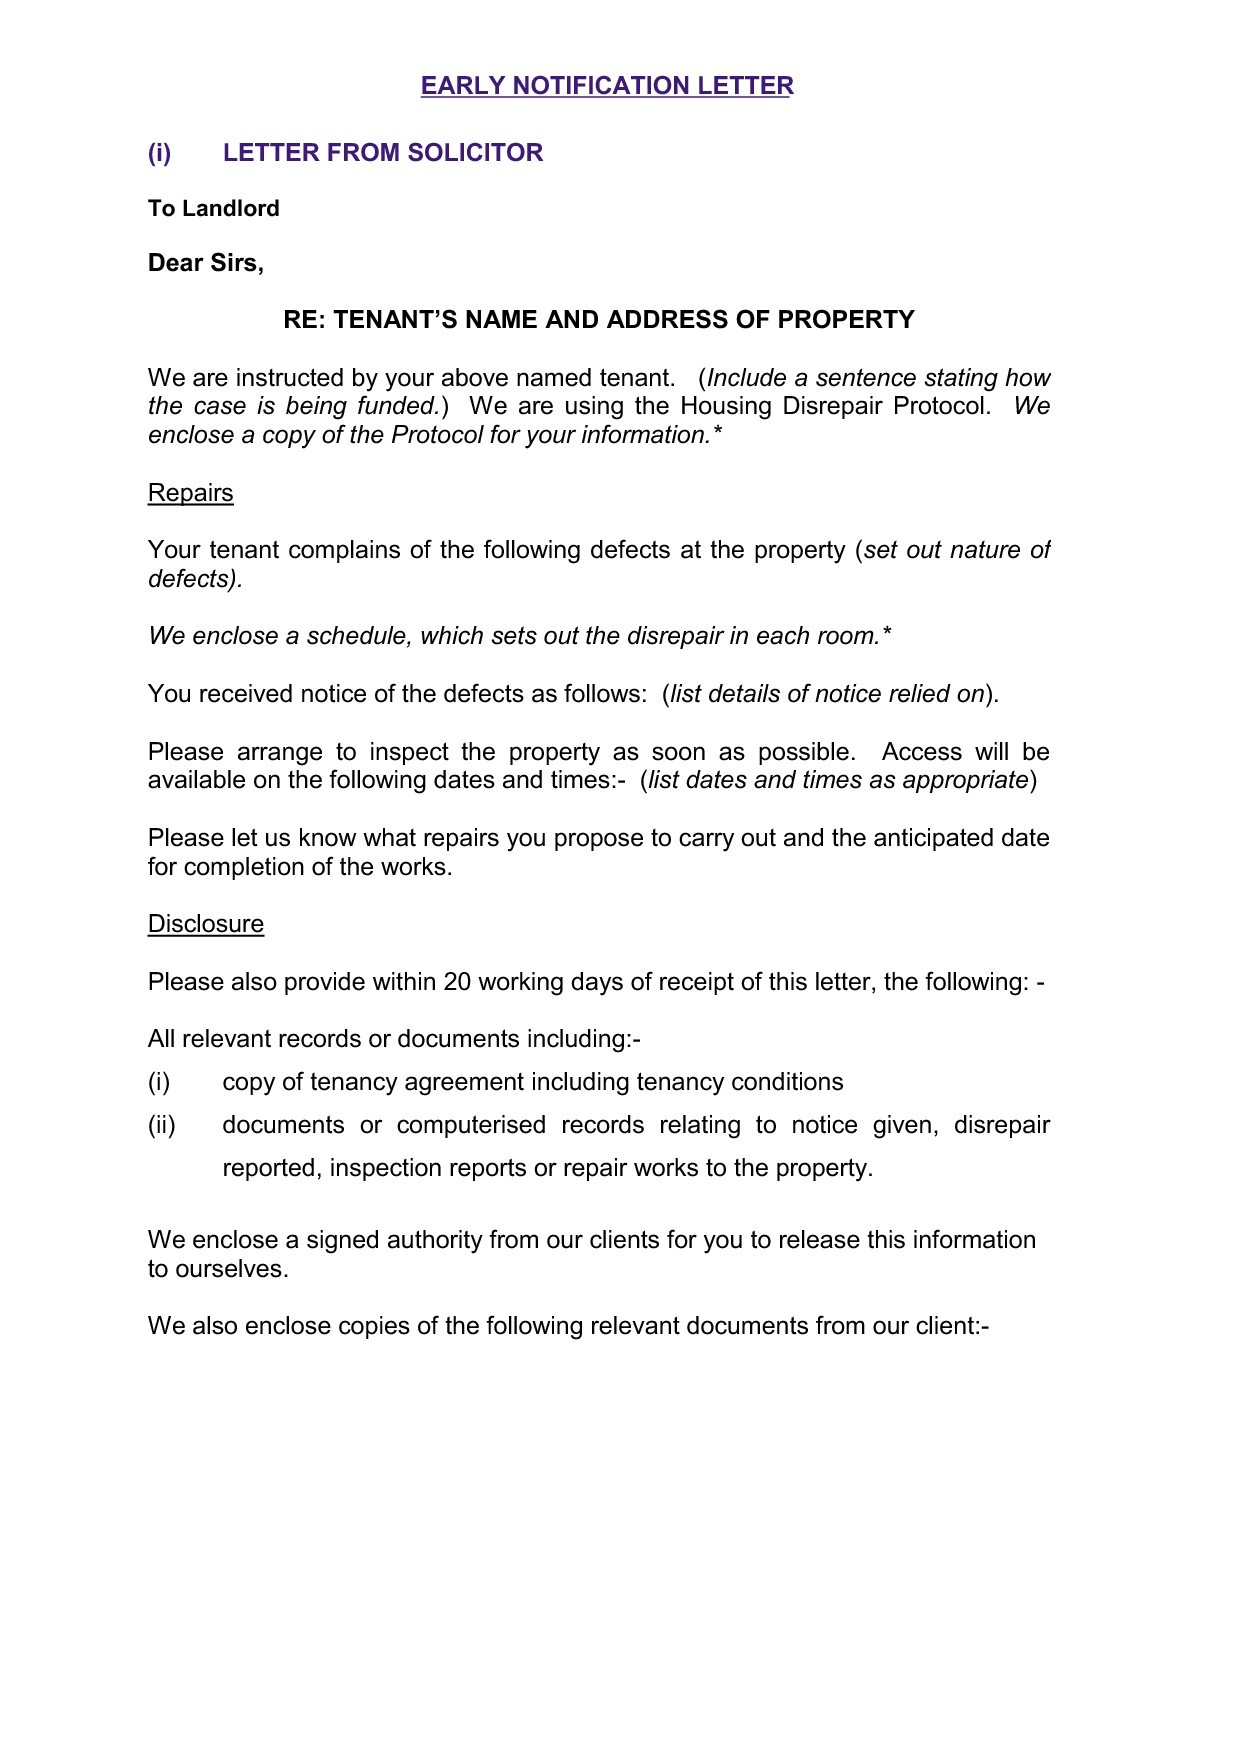 property inspection letter to tenant template example-Property Inspection Letter to Tenant Uk Archives New Property Inspection Letter to Tenant Uk Archives Codeshaker 16-n